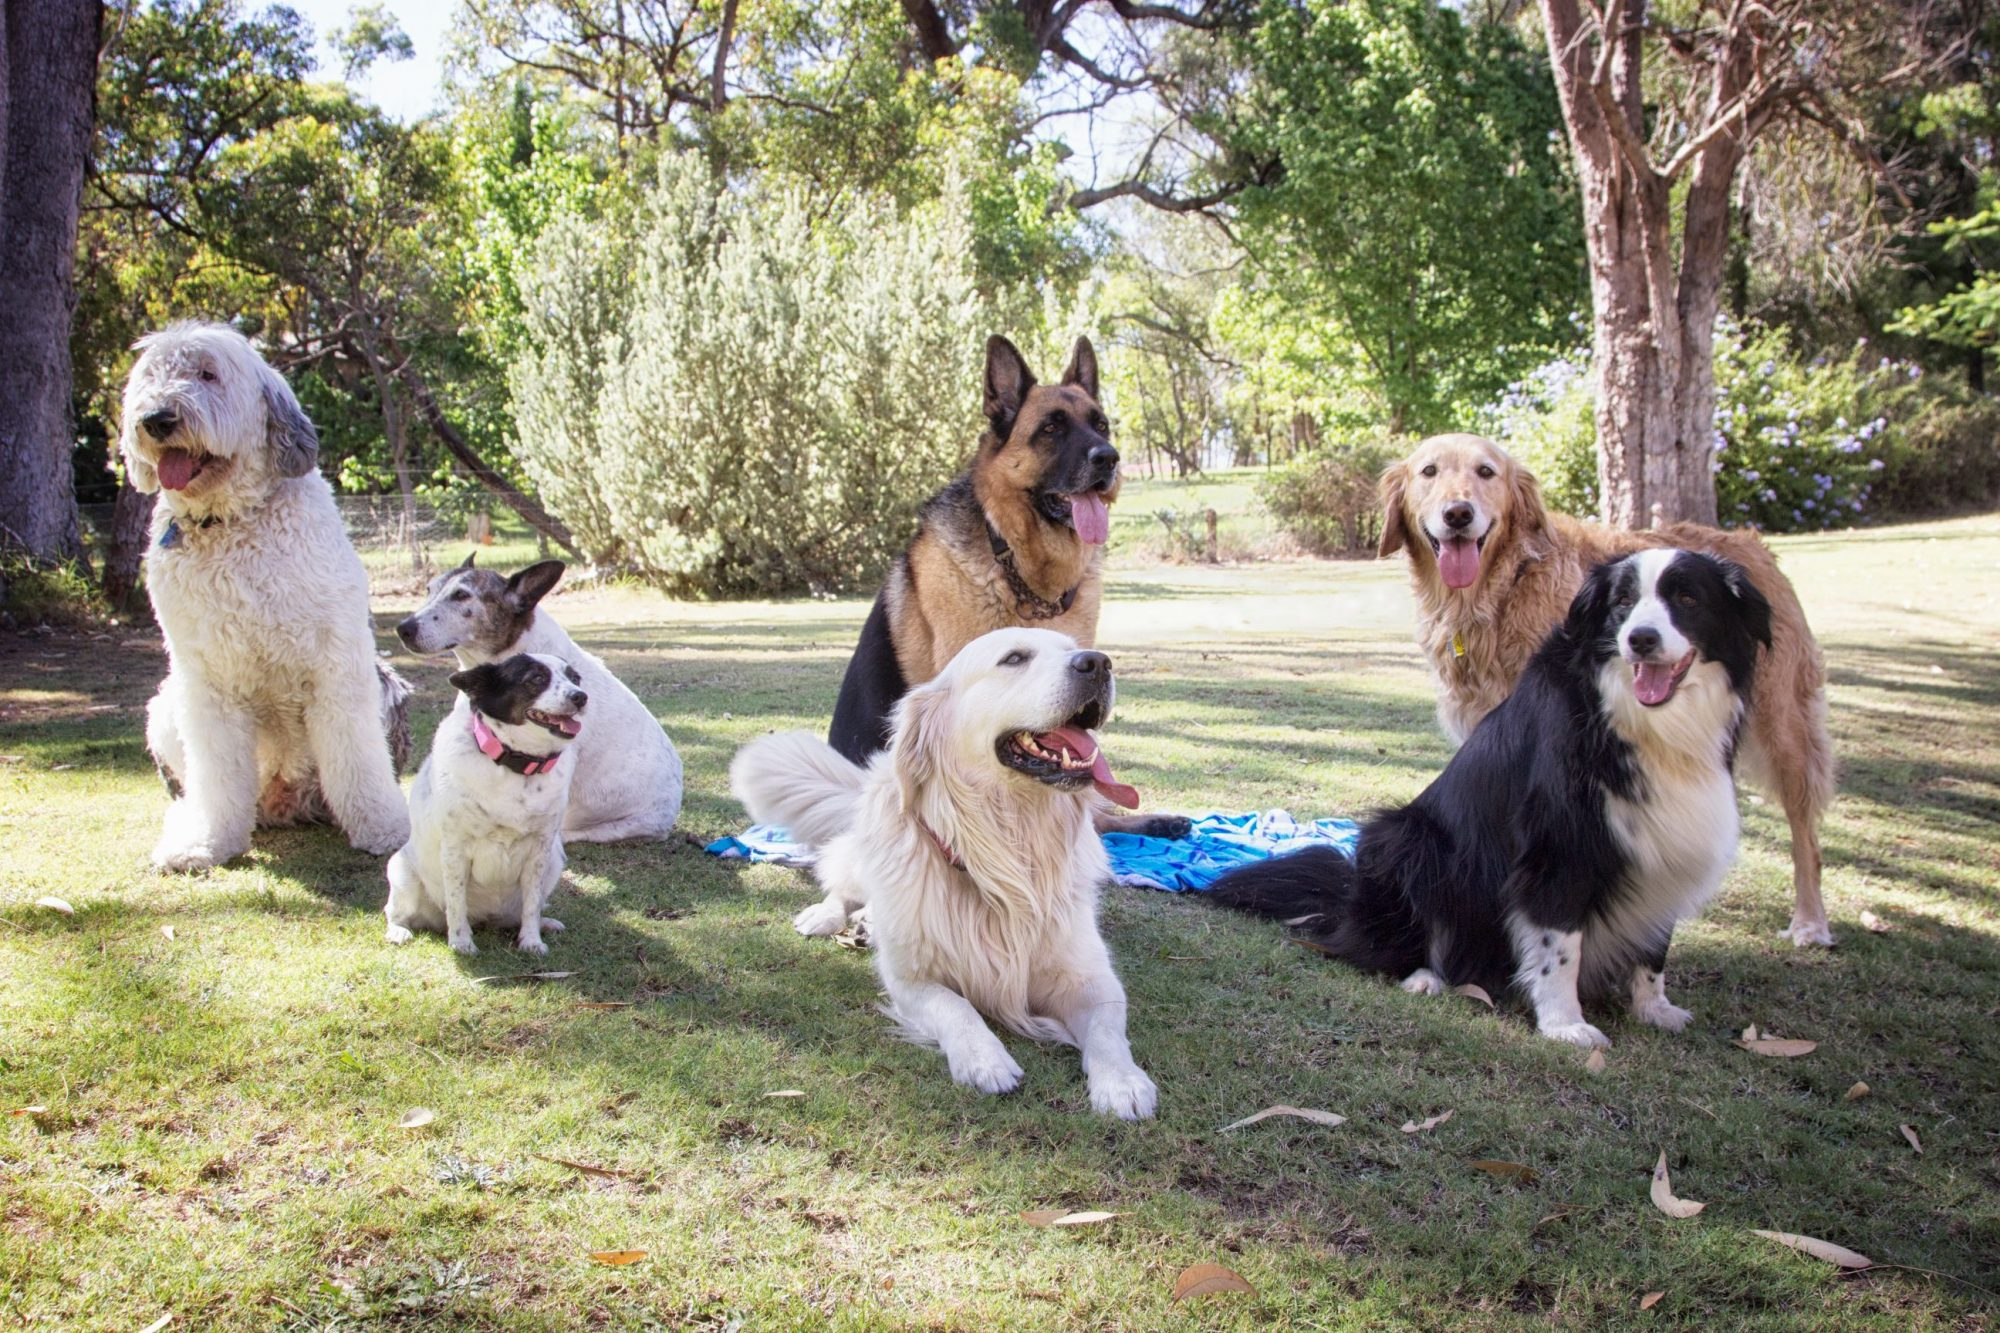 A group of dogs in the park.